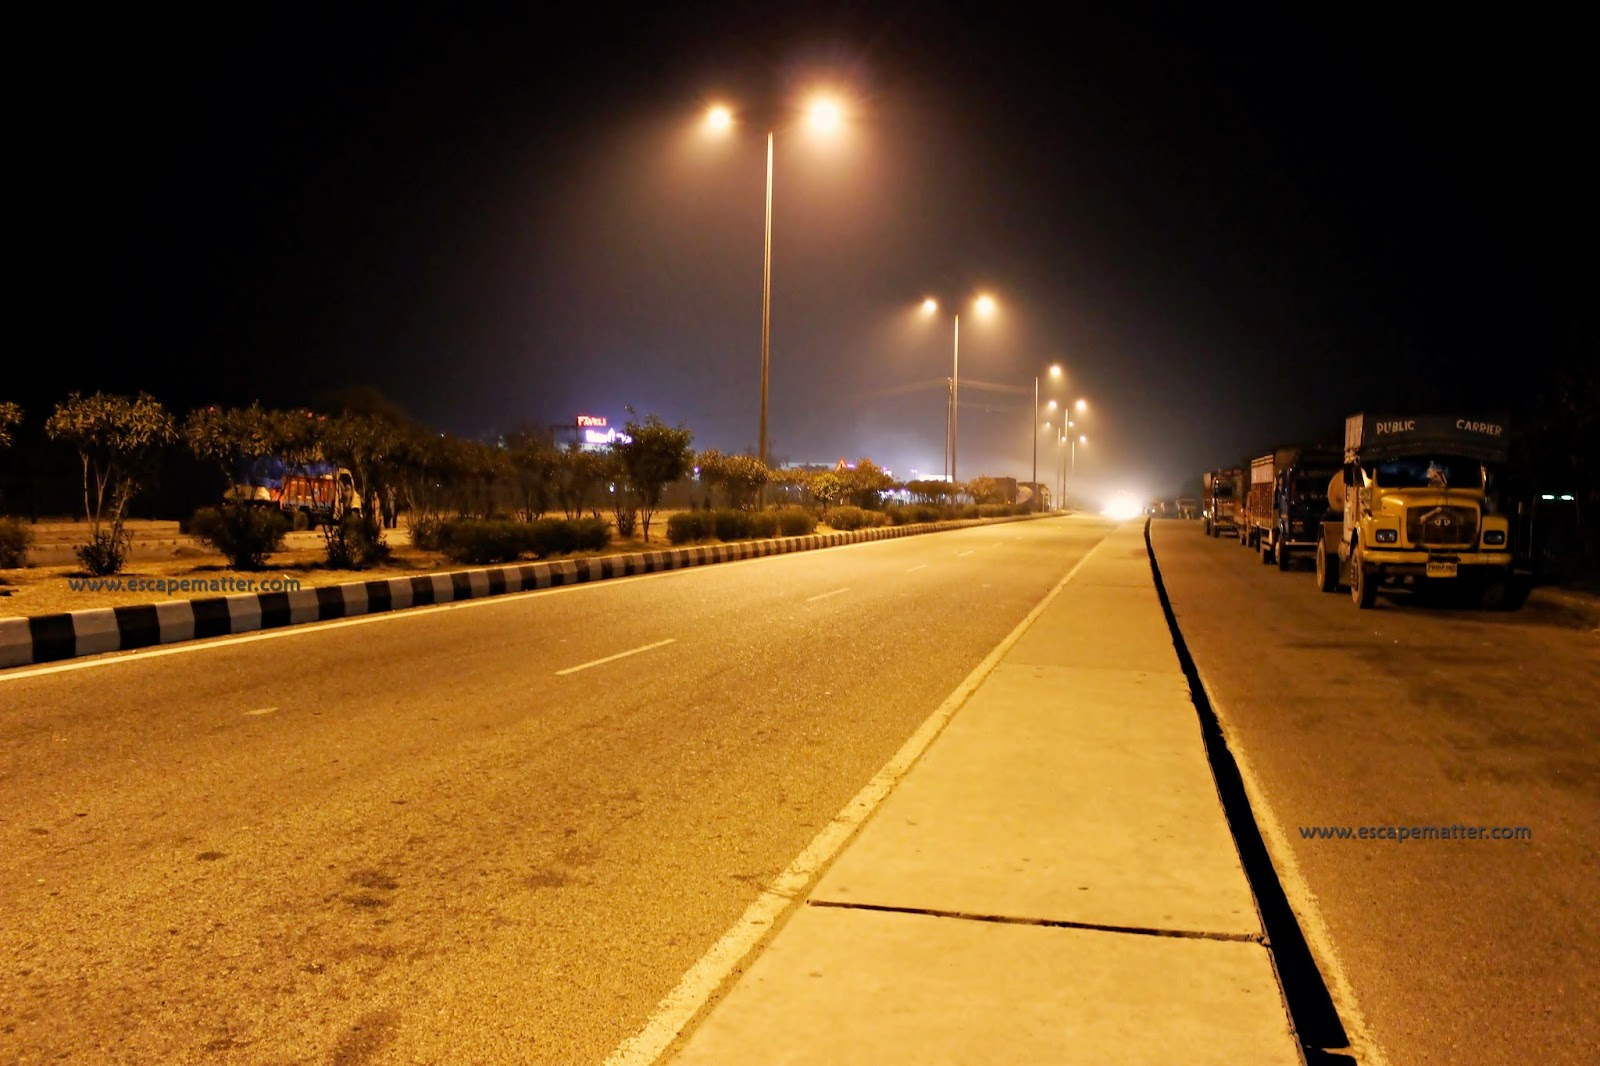 National Highway 3, Solkhian, Punjab 140108